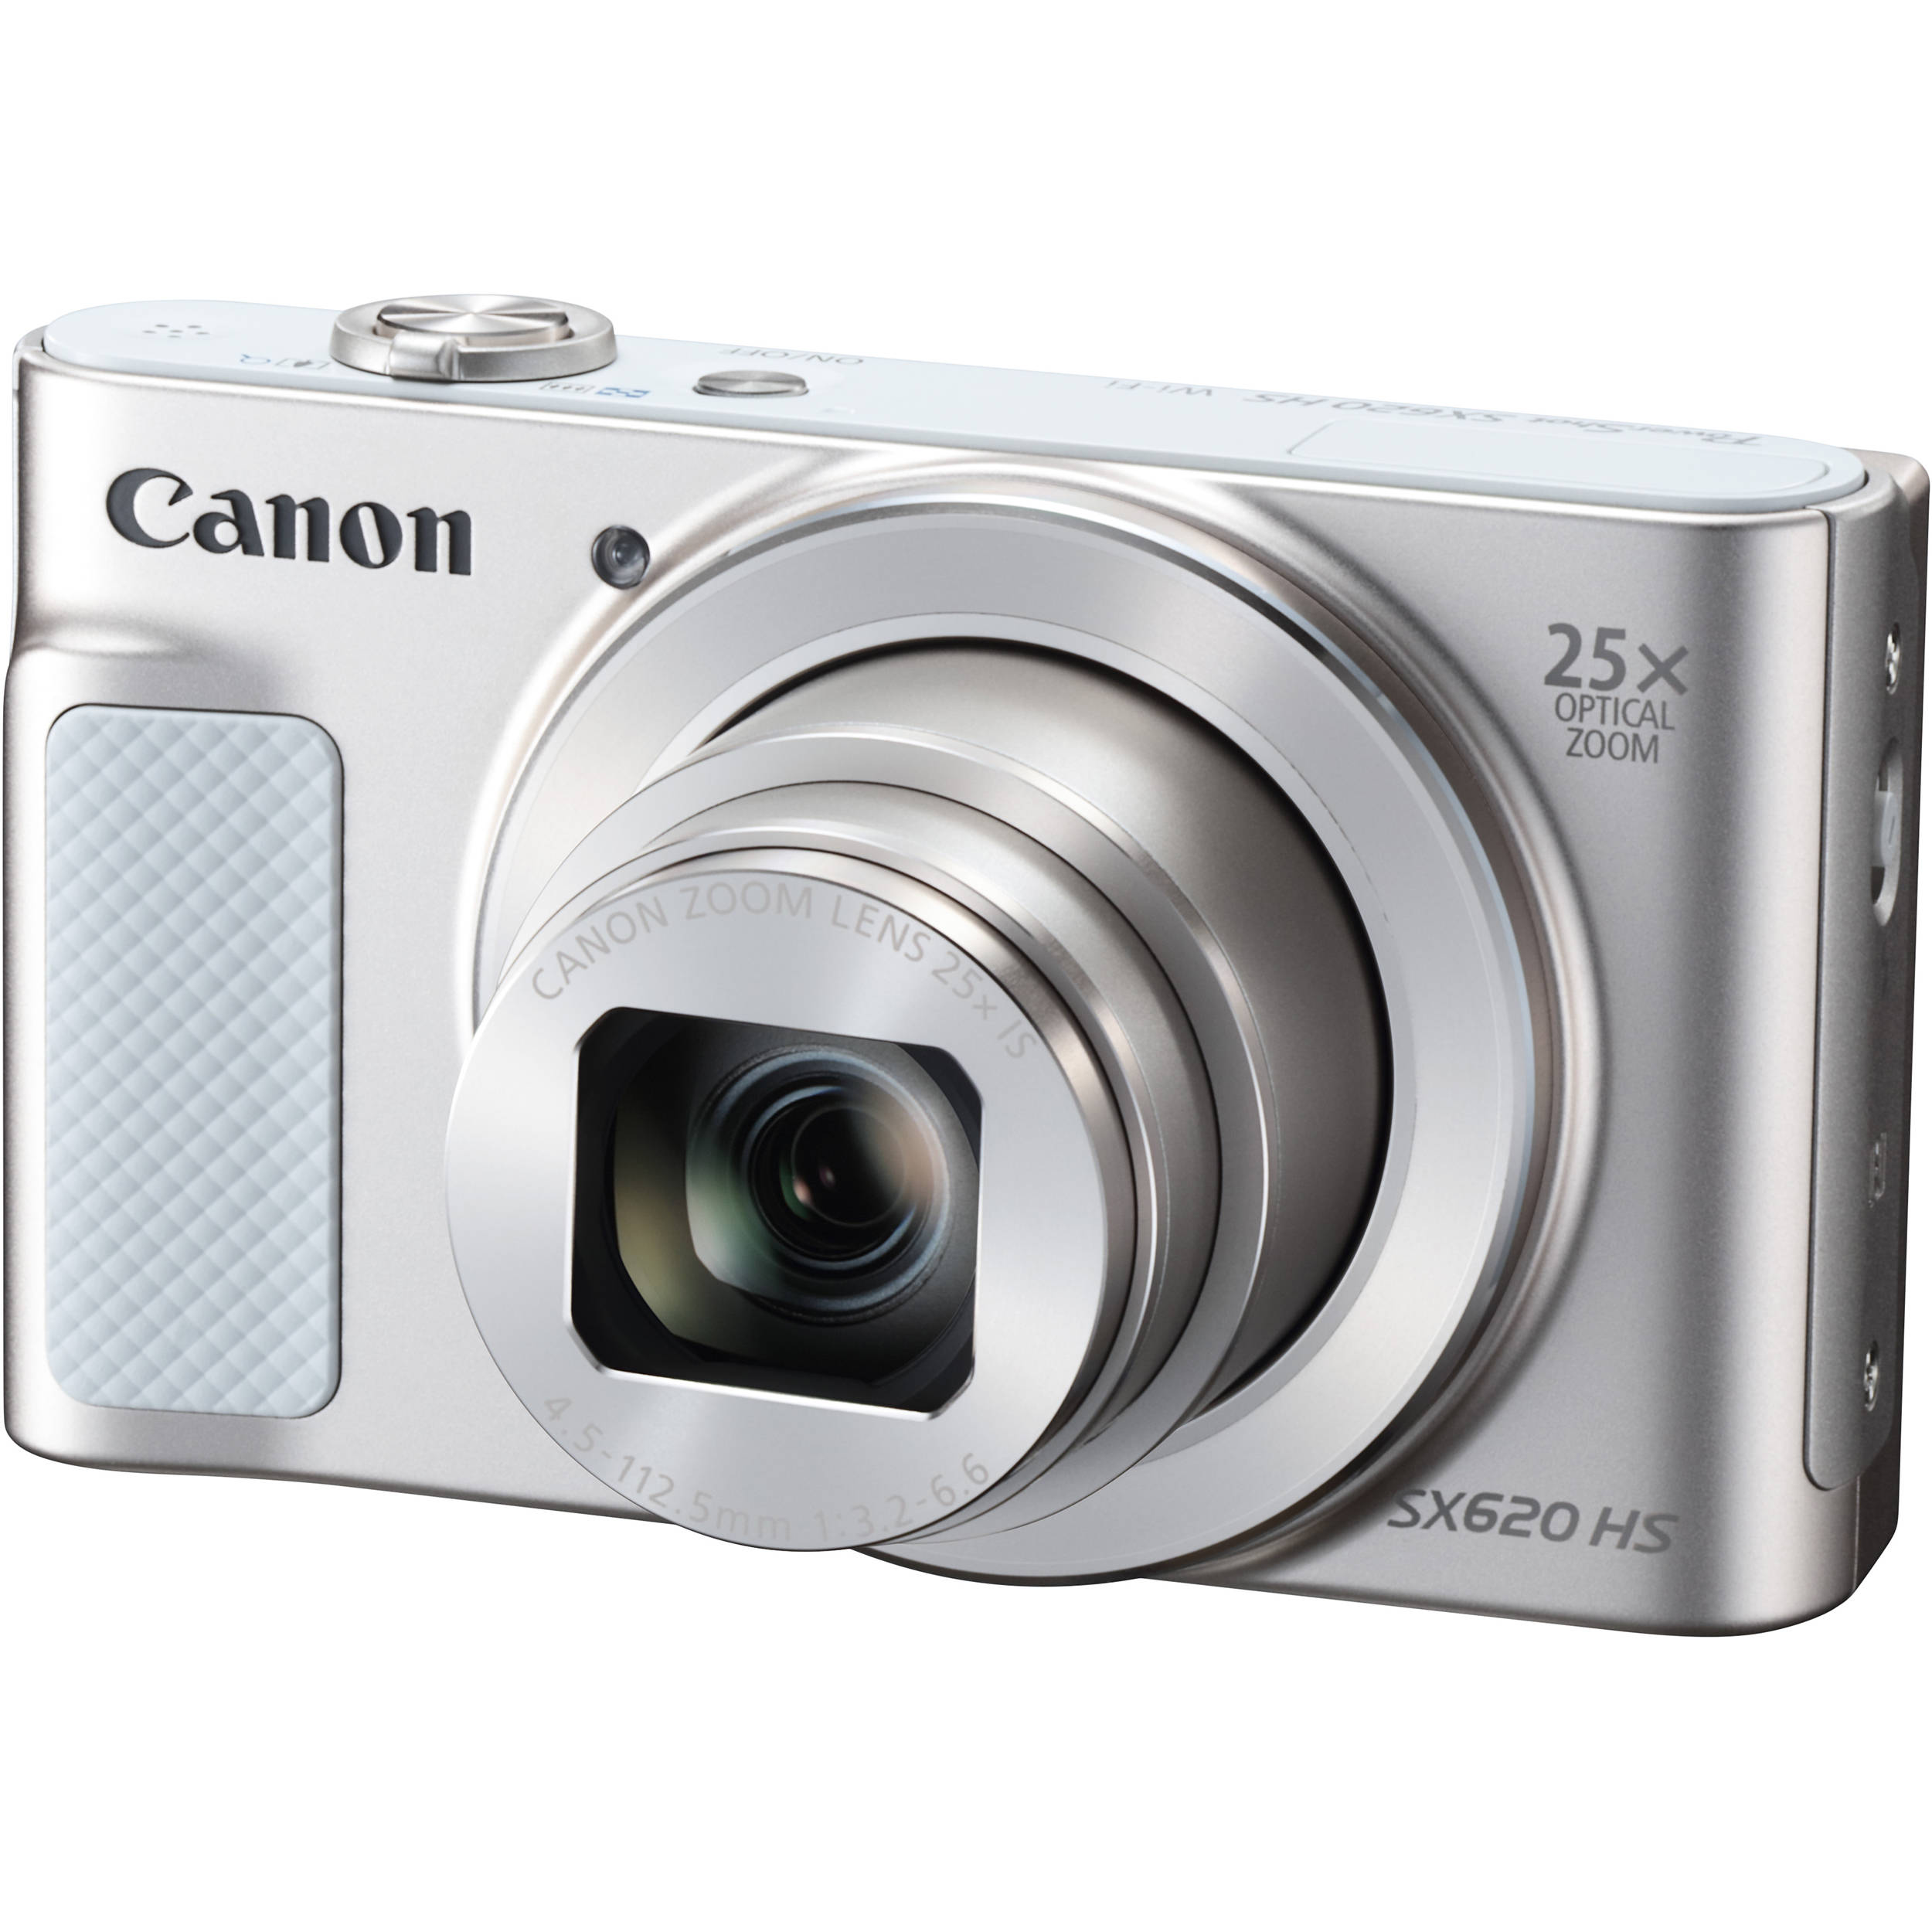 how to build remote for canon powershot camera